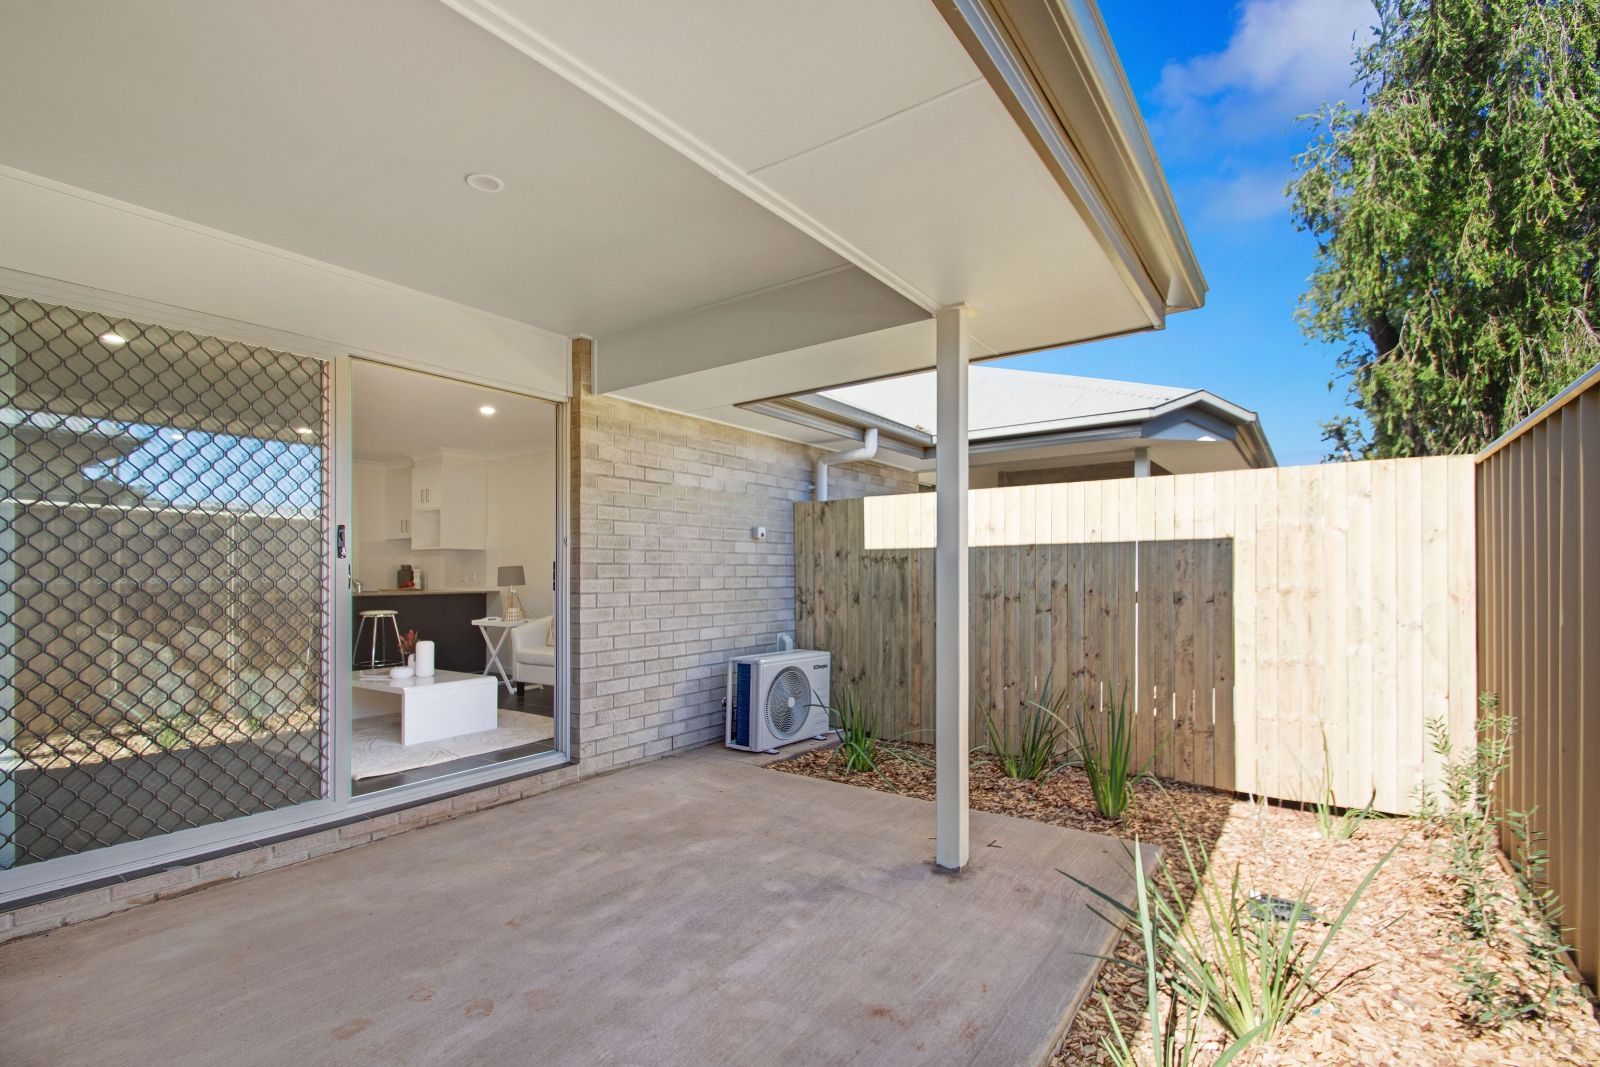 4/10 Glenvale Road, Harristown QLD 4350, Image 10